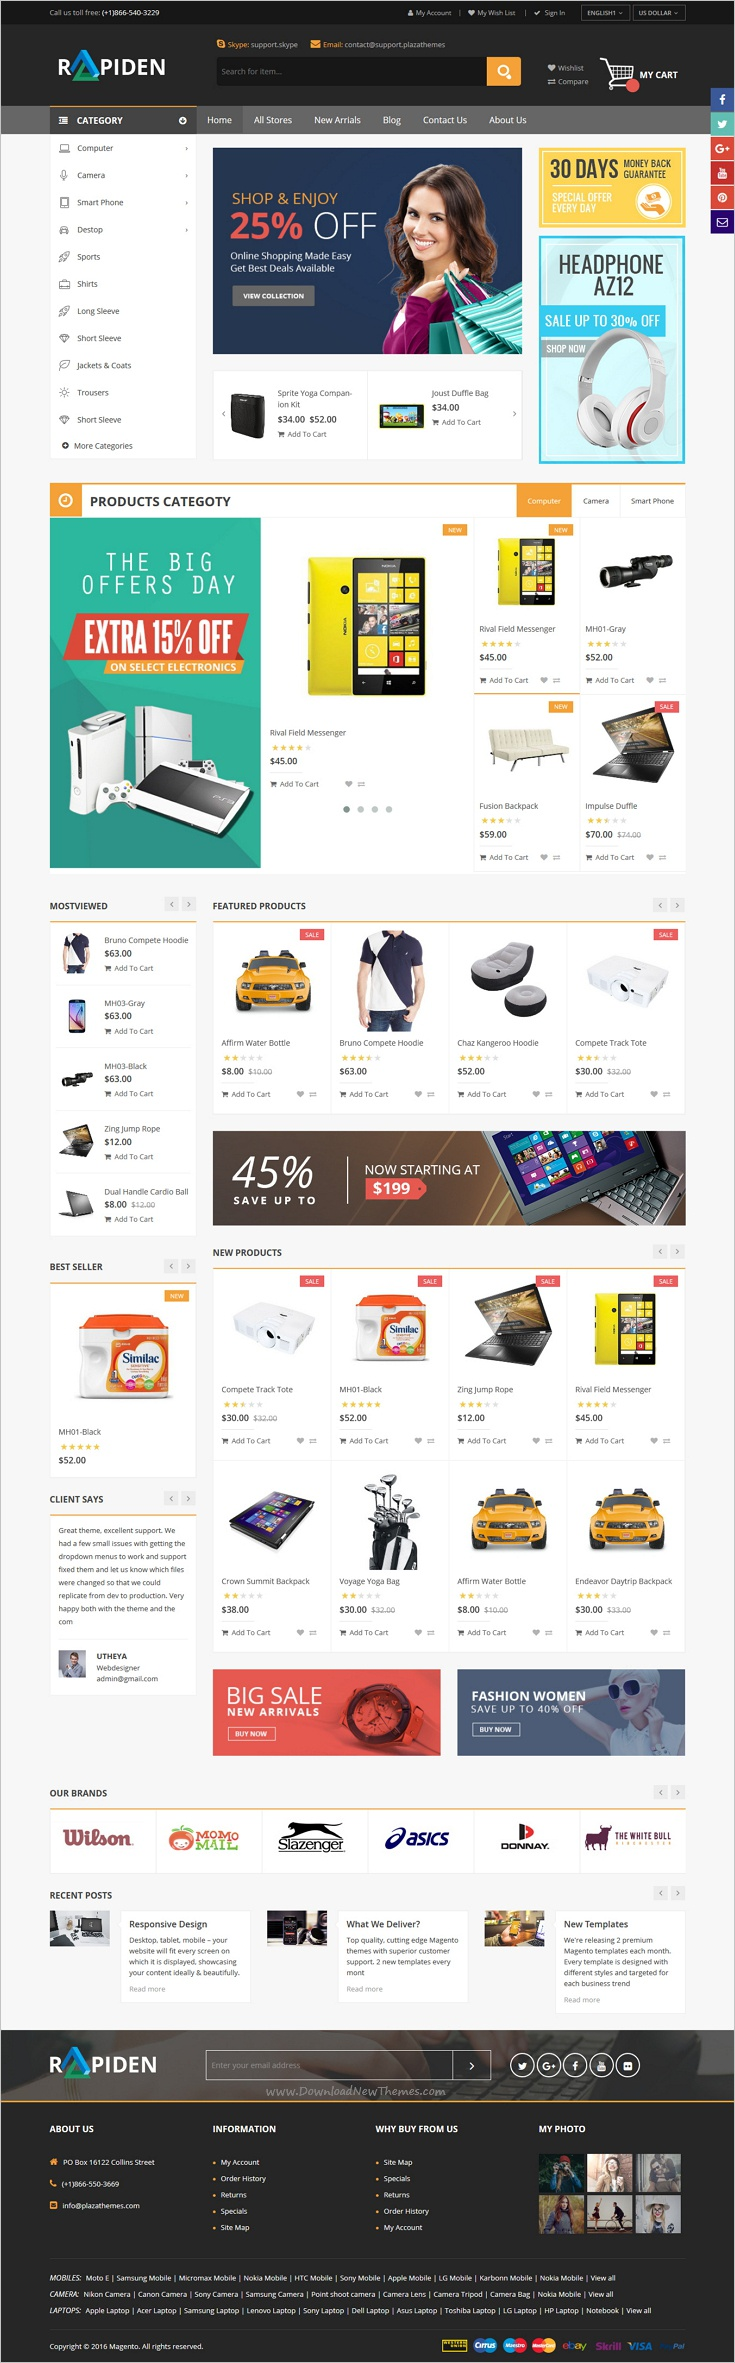 Rapiden is a modern and elegant design responsive #Magento theme for #webdesign multipurpose #eCommerce websites with 4 unique homepage layouts download now➩ https://themeforest.net/item/rapiden-mega-shop-responsive-magento-theme/19221939?ref=Datasata